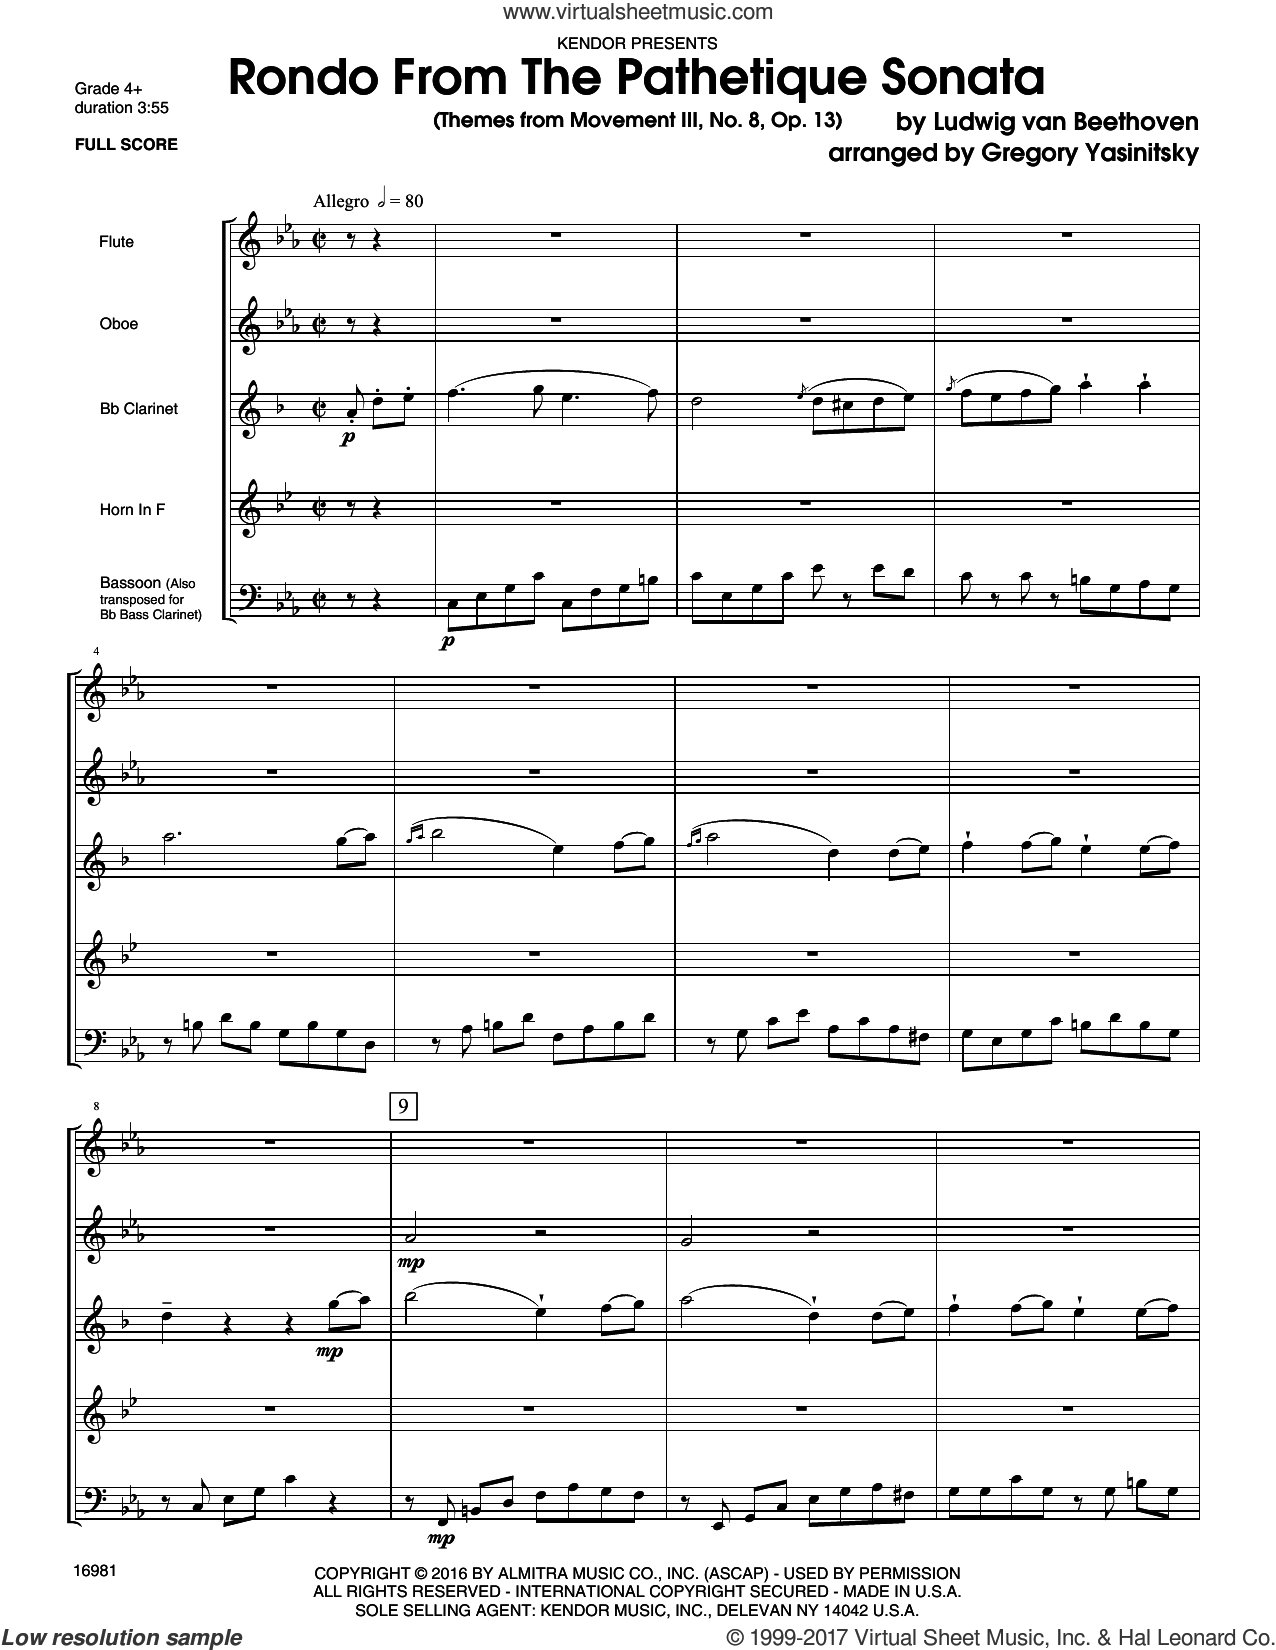 Rondo From The Pathetique Sonata (Themes From Movement III, No. 8, Op. 13) (COMPLETE) sheet music for wind quintet by Ludwig van Beethoven and Gregory Yasinitsky, classical score, intermediate skill level